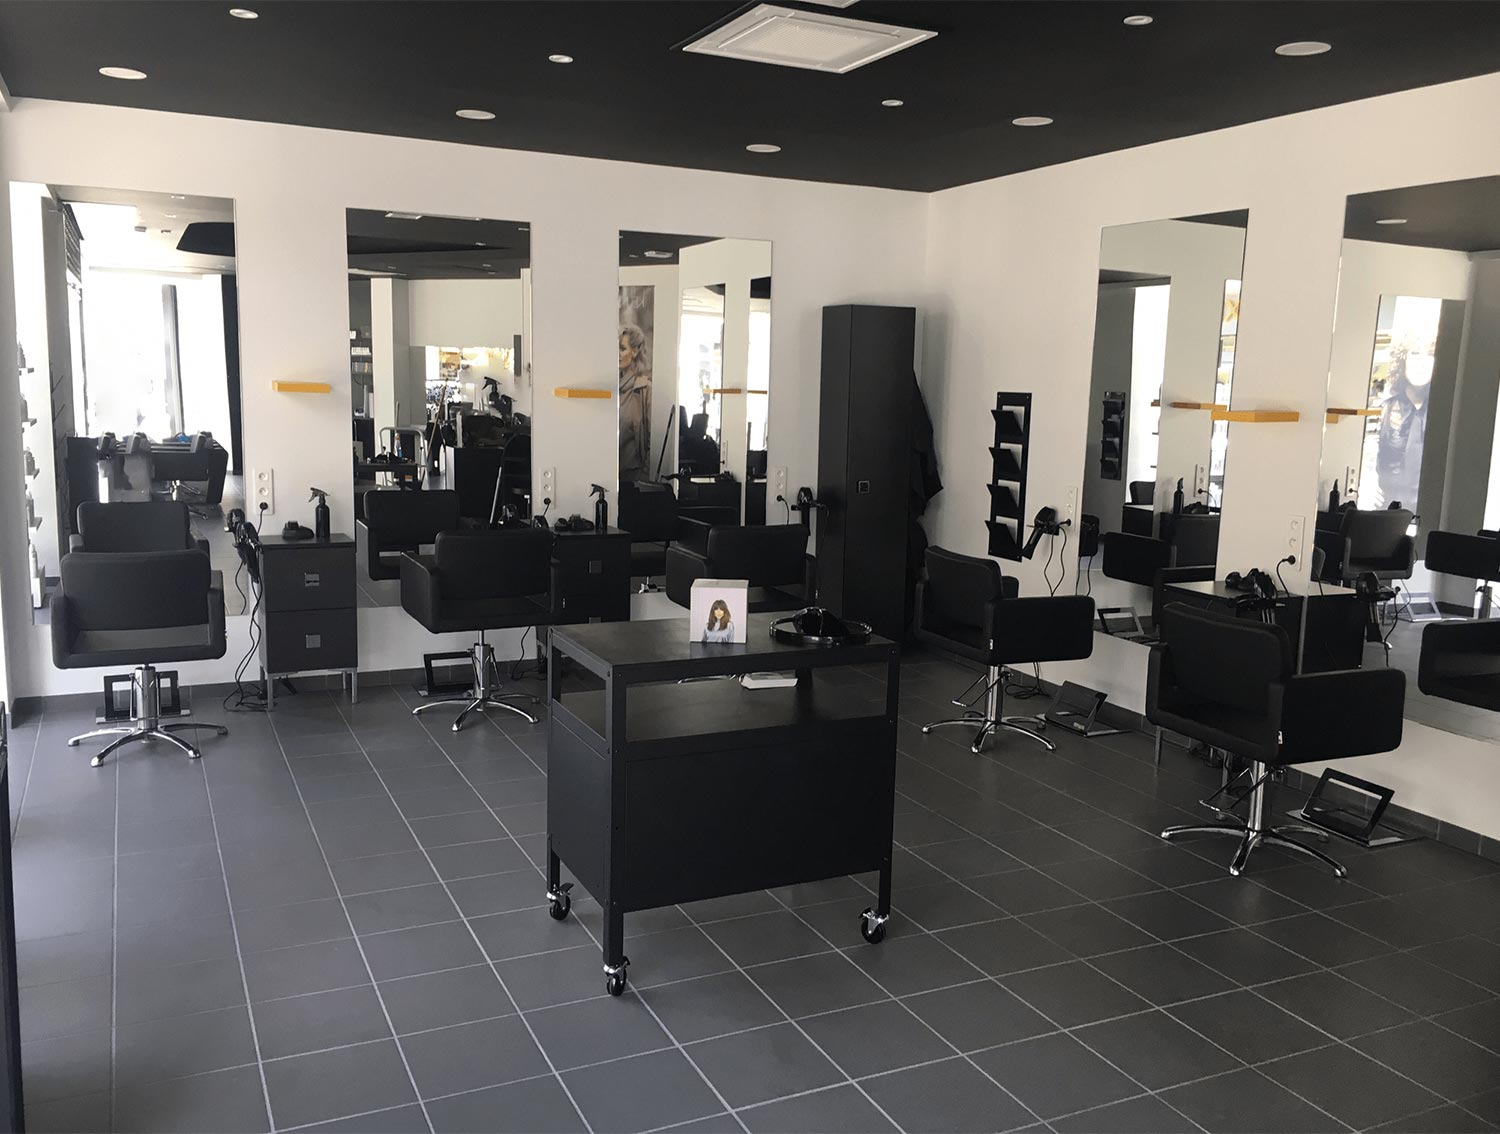 Salon de coiffure, Soissons